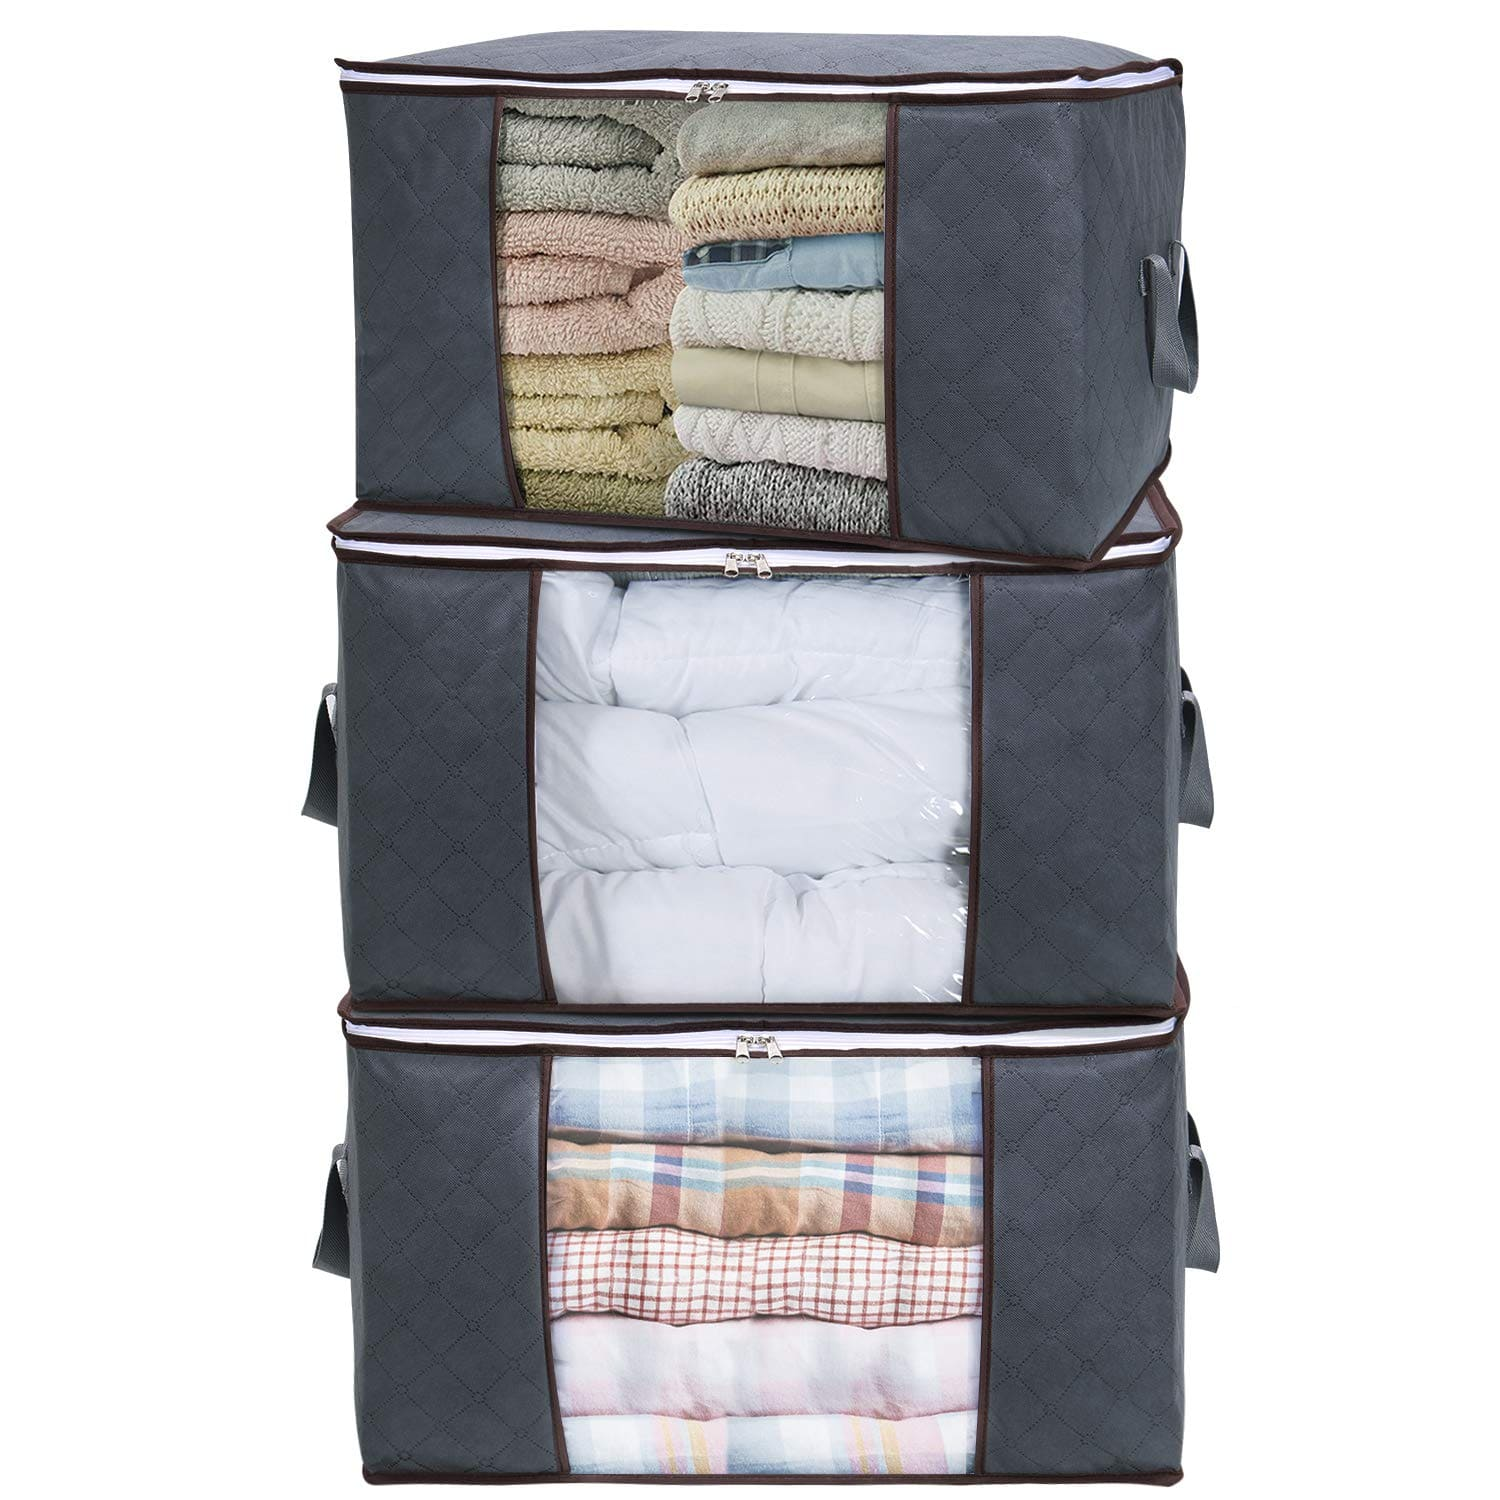 3 Pack 90L Grey Clothes Storage Bag for Comforters, Blankets, Bedding for $16.24 +FS w/Prime